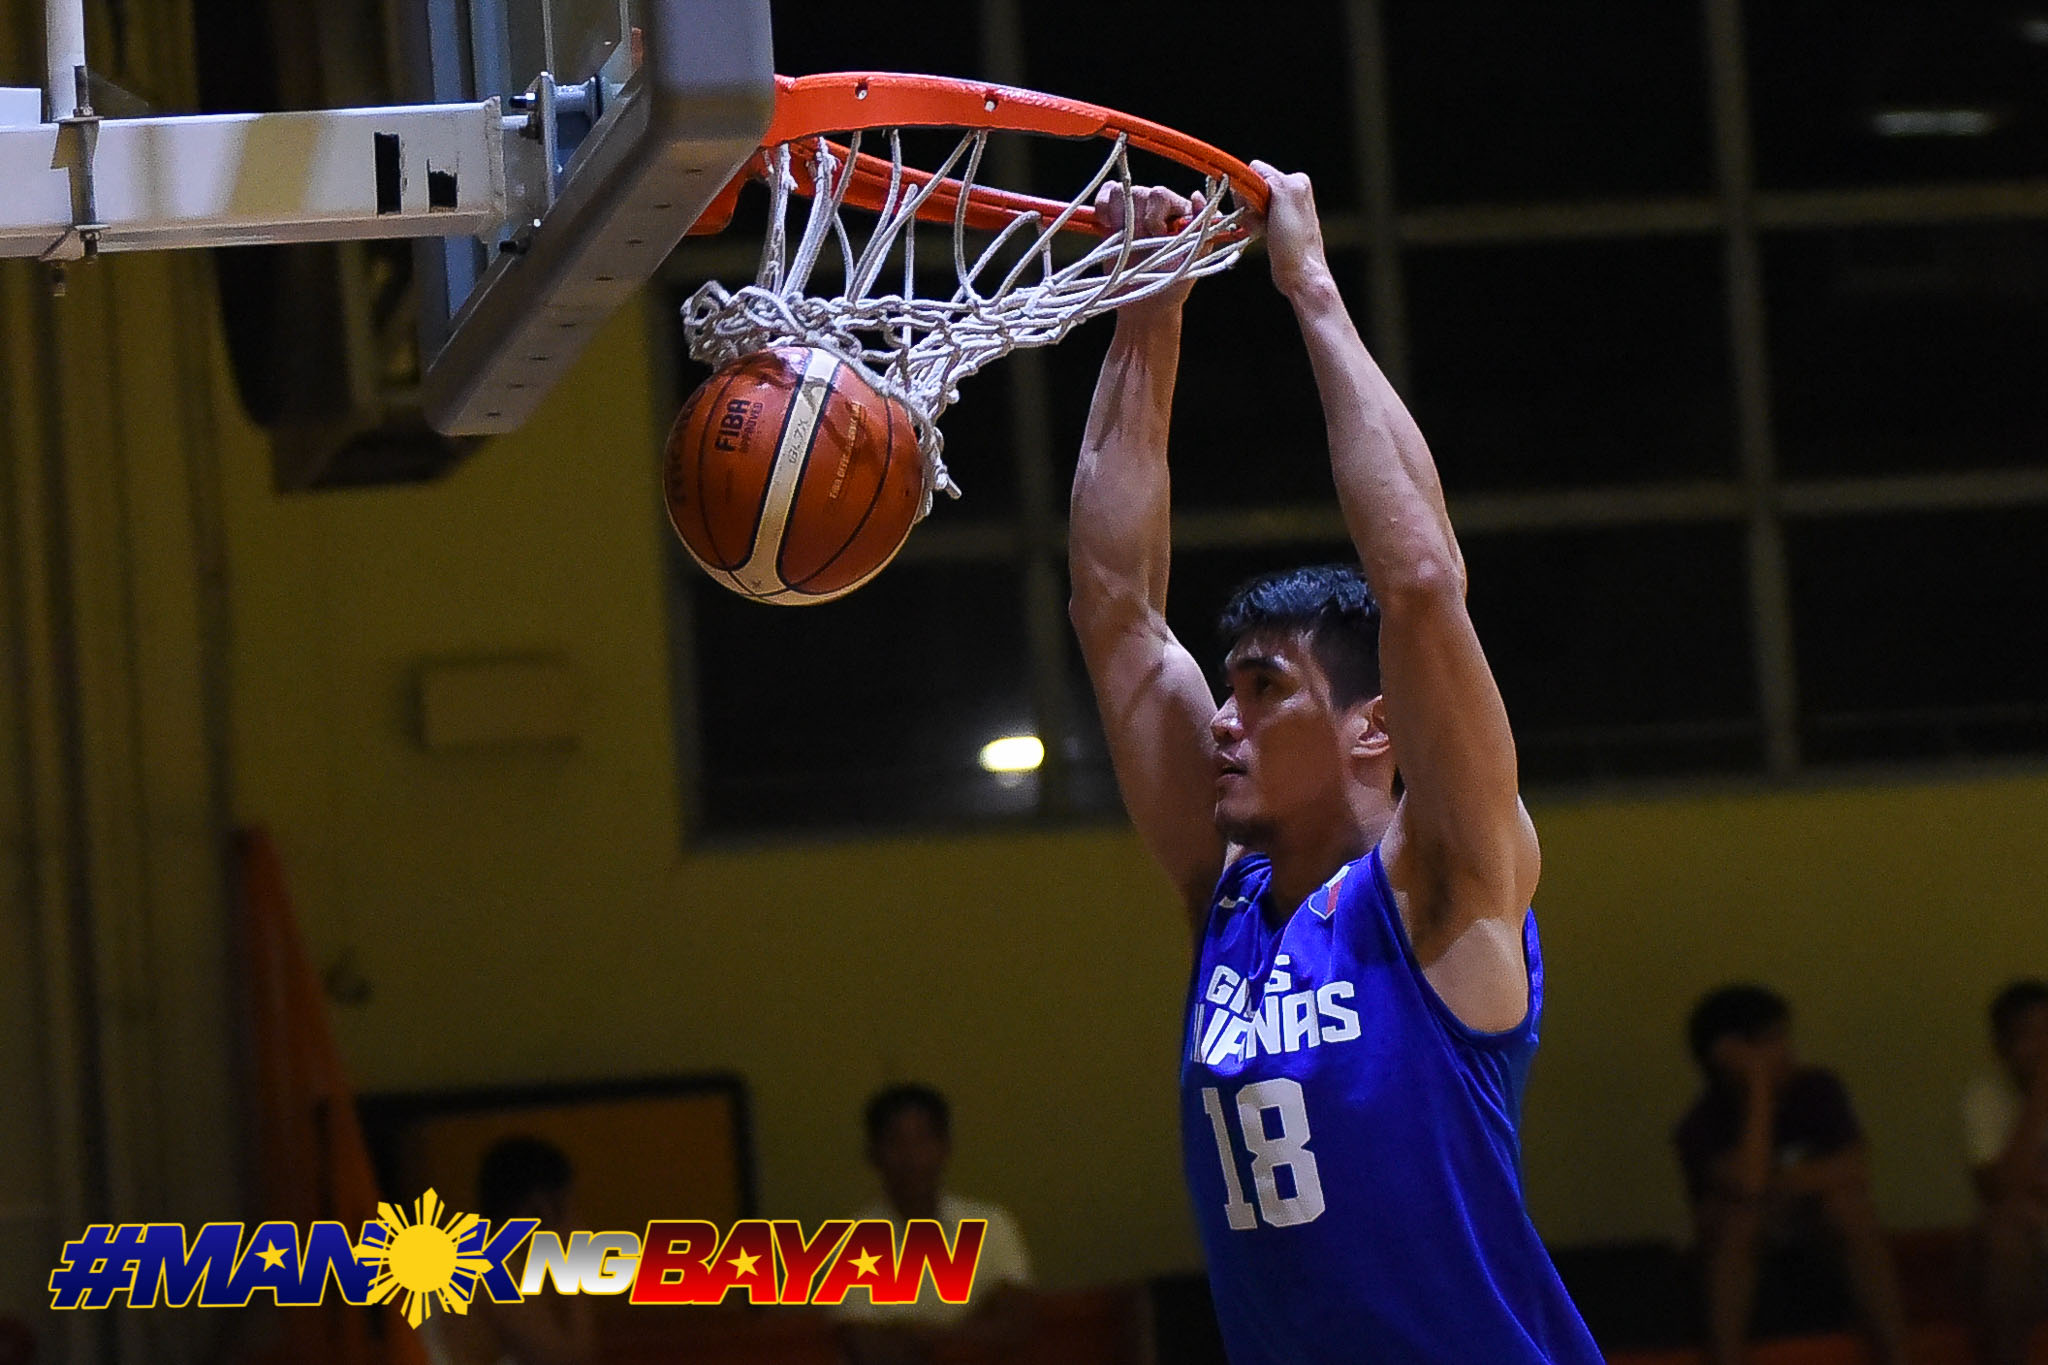 Tiebreaker Times Troy Rosario cleared for light sessions, but Gilas status still doubtful 2019 FIBA World Cup Qualifiers Basketball Gilas Pilipinas News  Troy Rosario Chot Reyes 2019 FIBA World Cup Qualifiers Group B 2019 FIBA World Cup Qualifiers